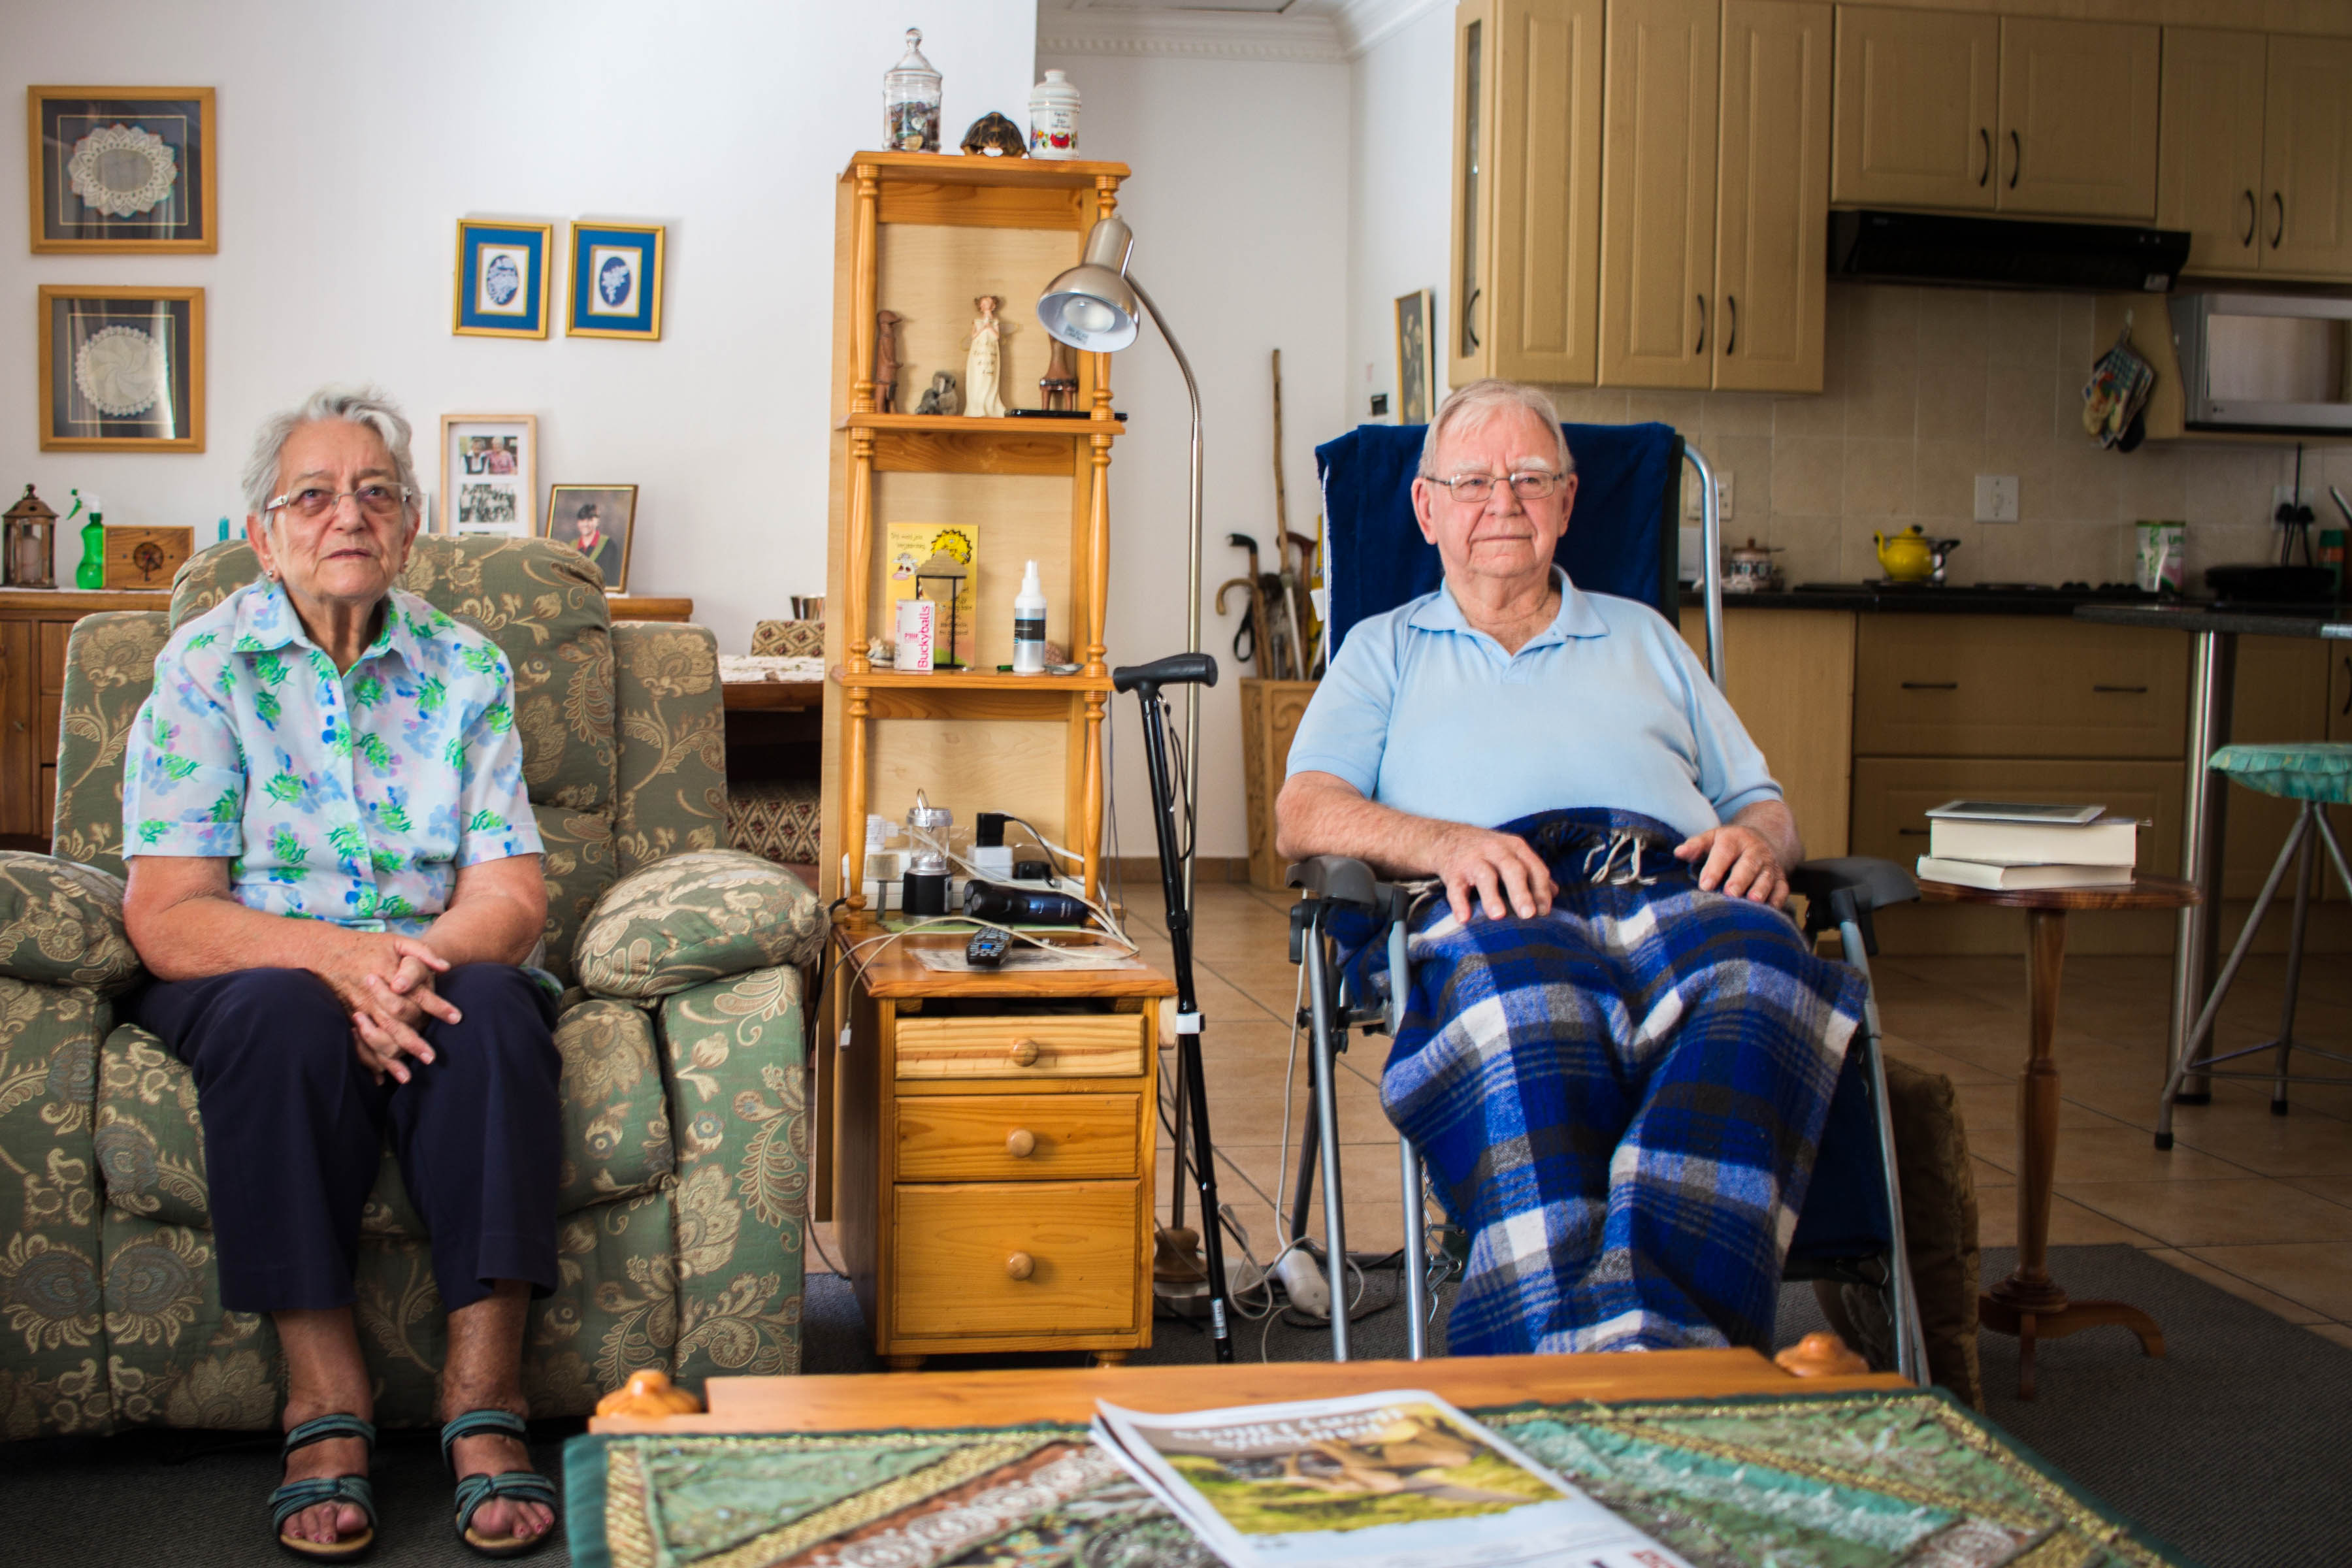 13 September 2019: Mart (left) and Gerard van Beek are pensioners living on a fixed income. They are struggling to afford the rapidly escalating cost of amenities in Newcastle.